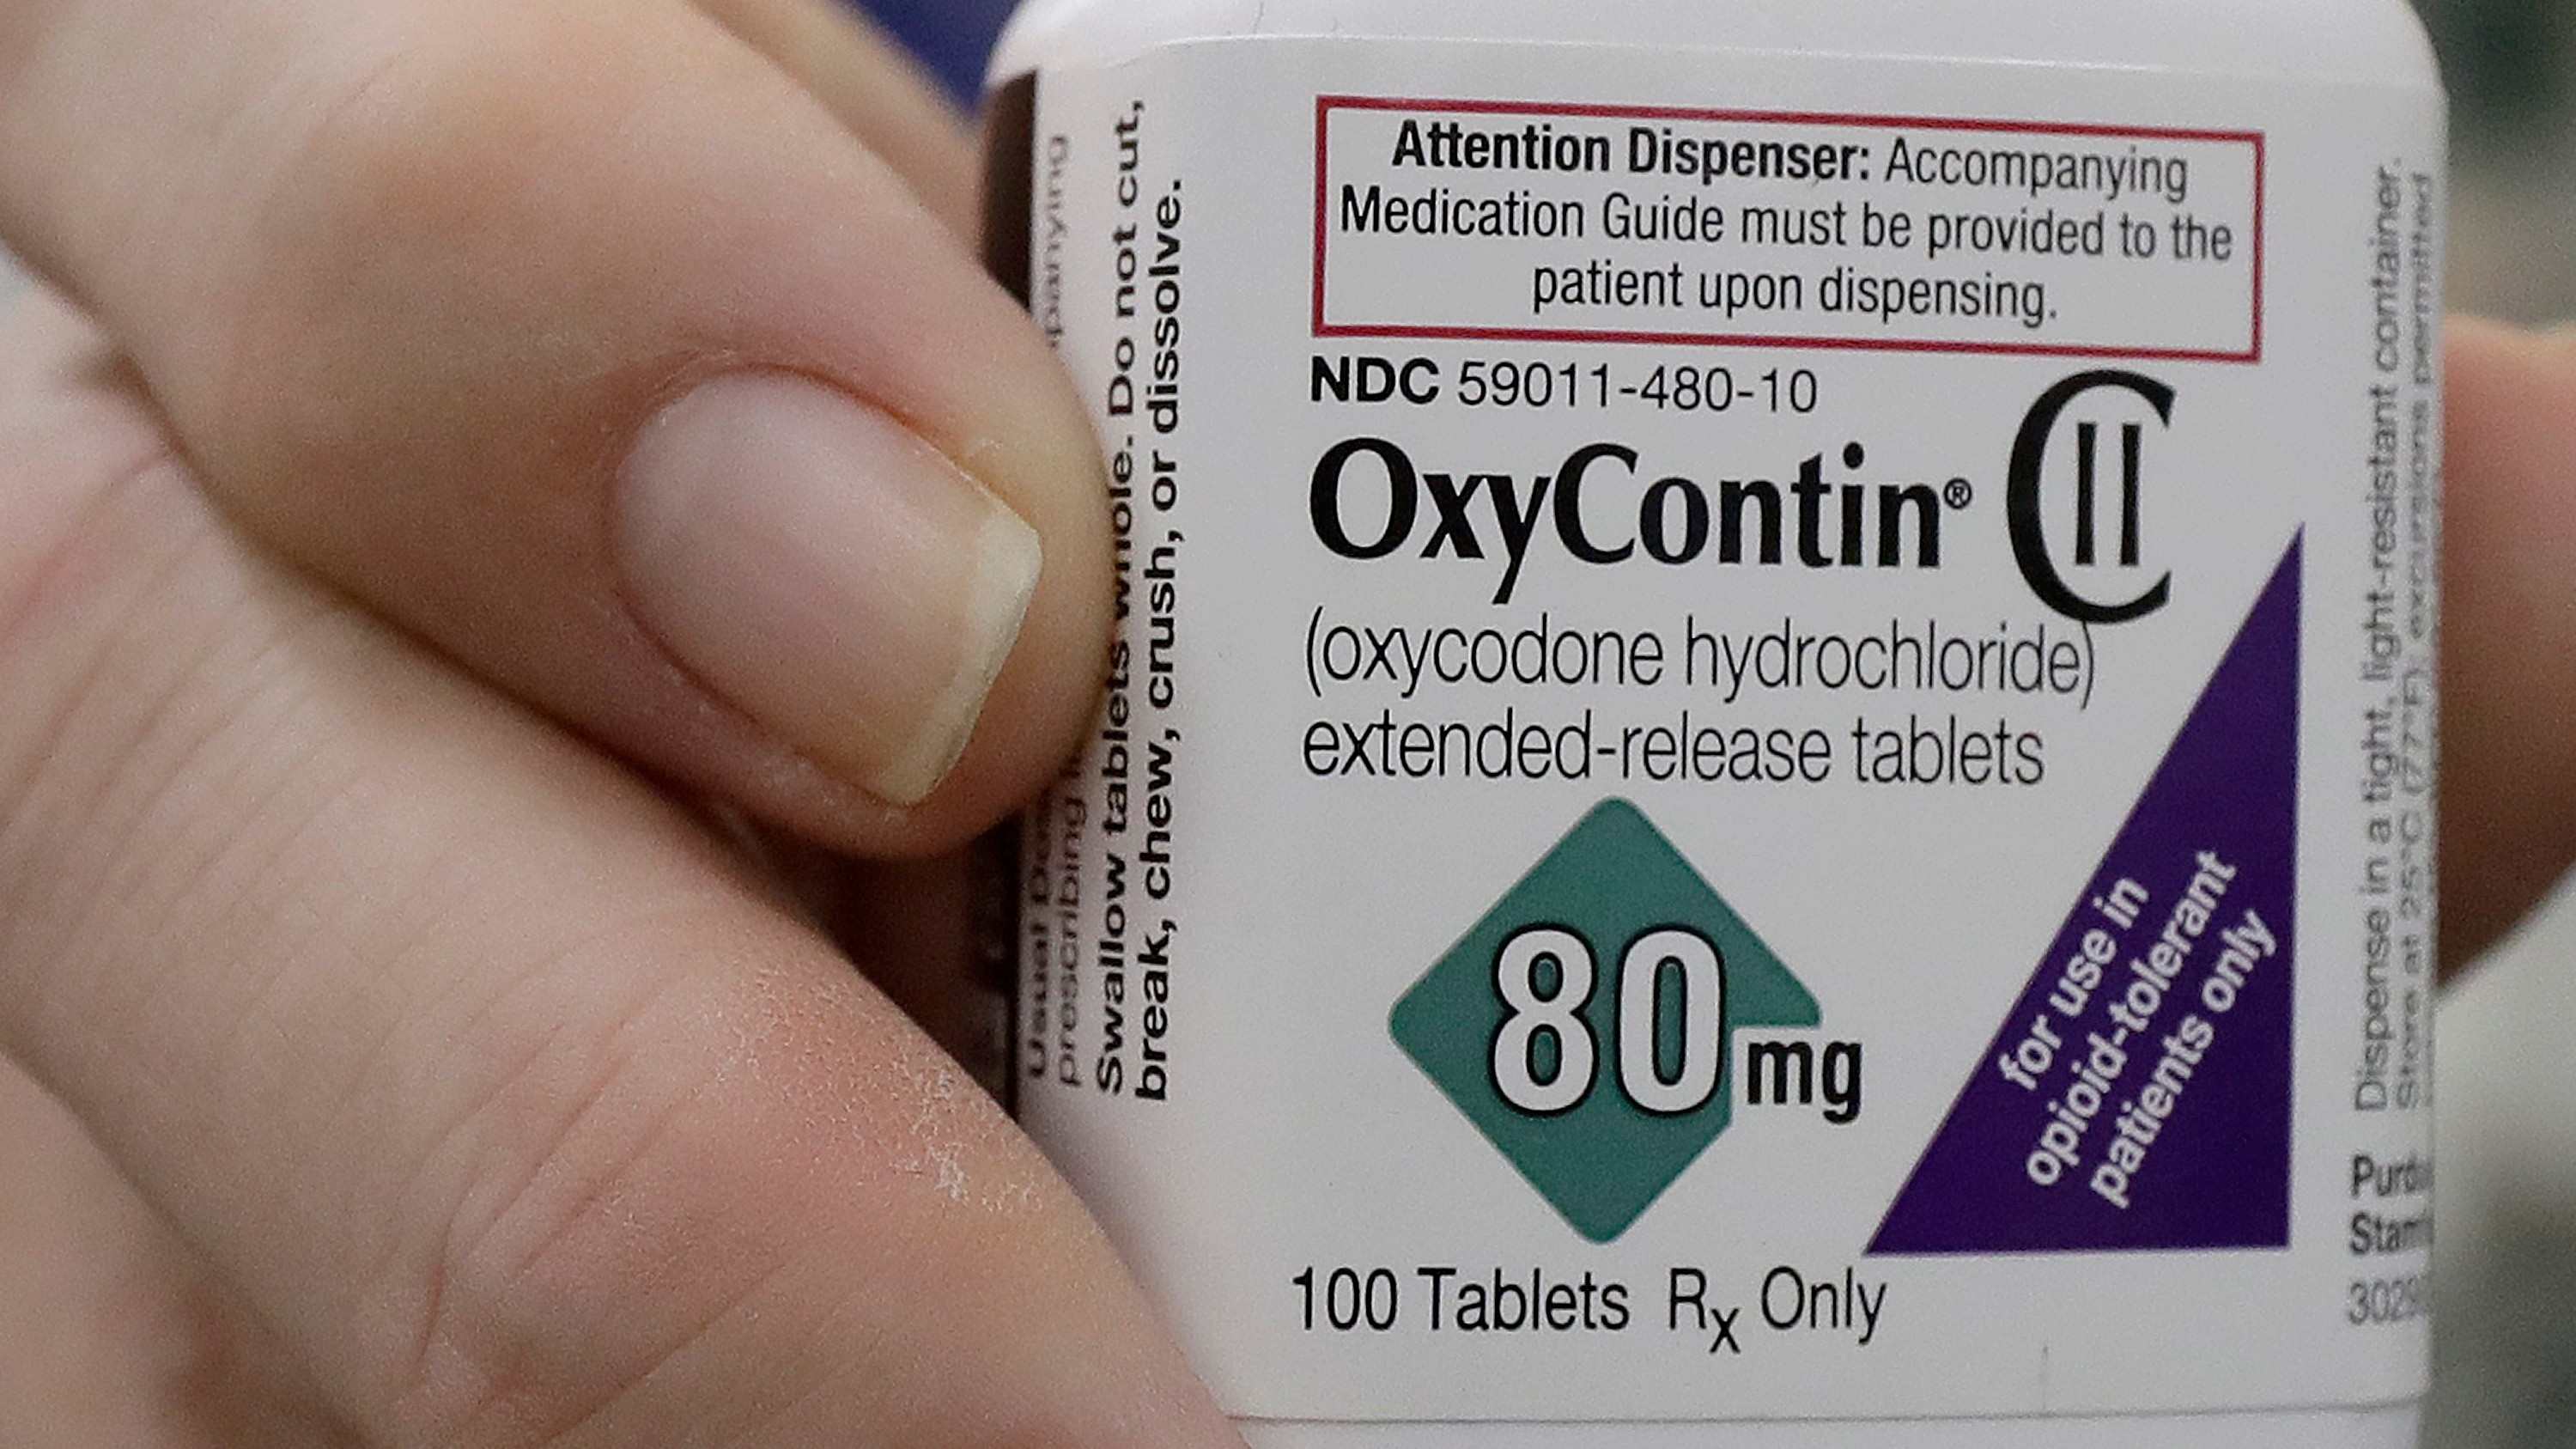 The billionaire family behind OxyContin is finally having its moment of reckoning​